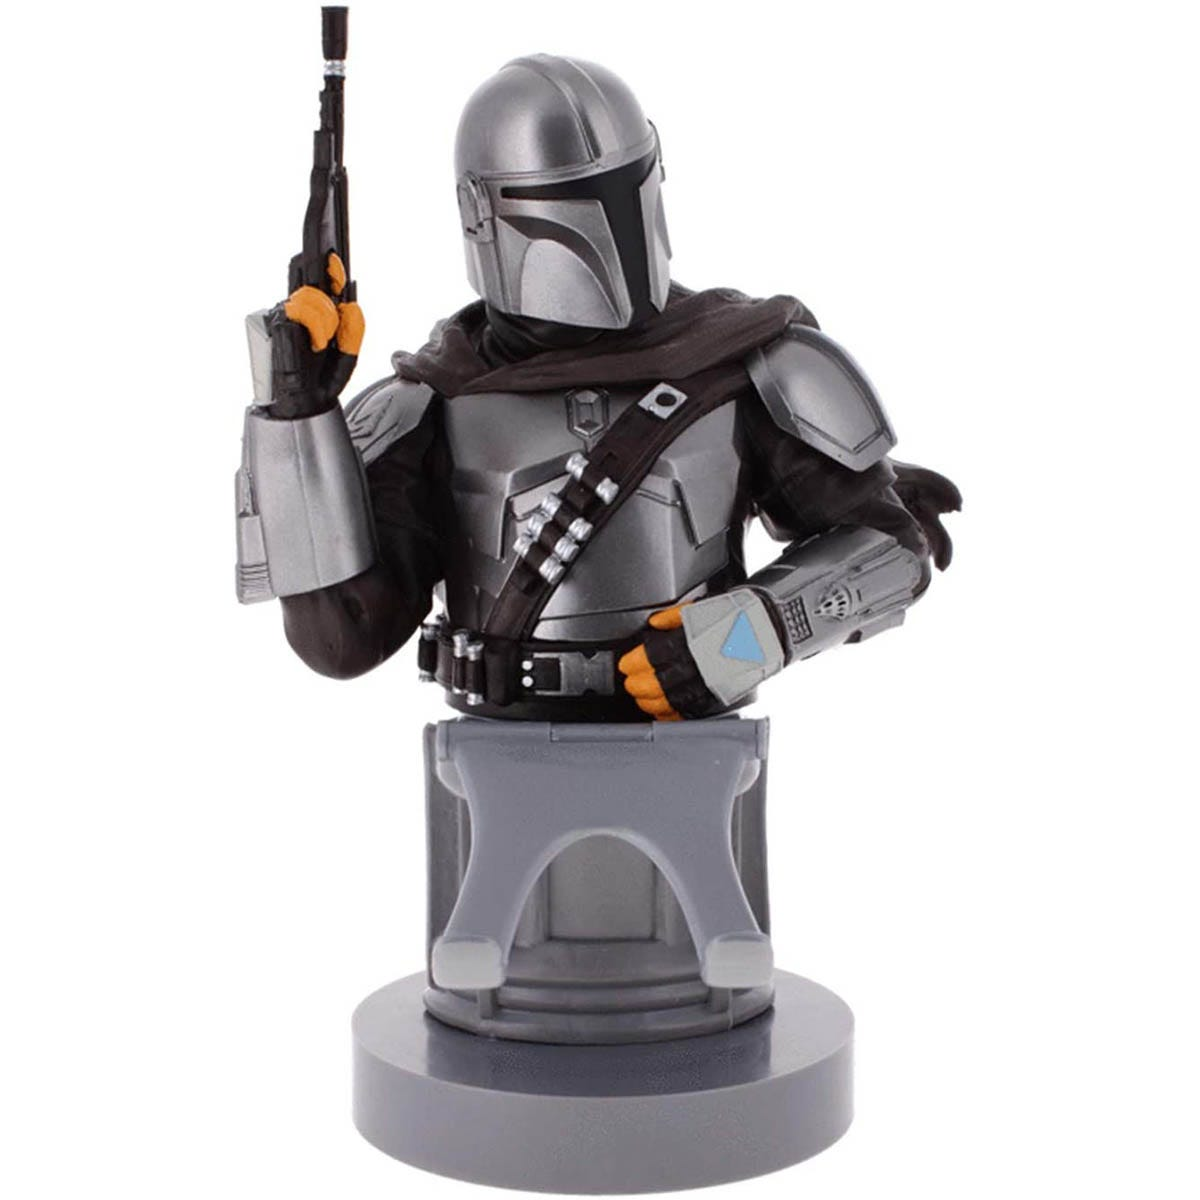 Cable Guys Star Wars The Mandalorian Cable Guy - Xbox Series X Controller/Phone Holder